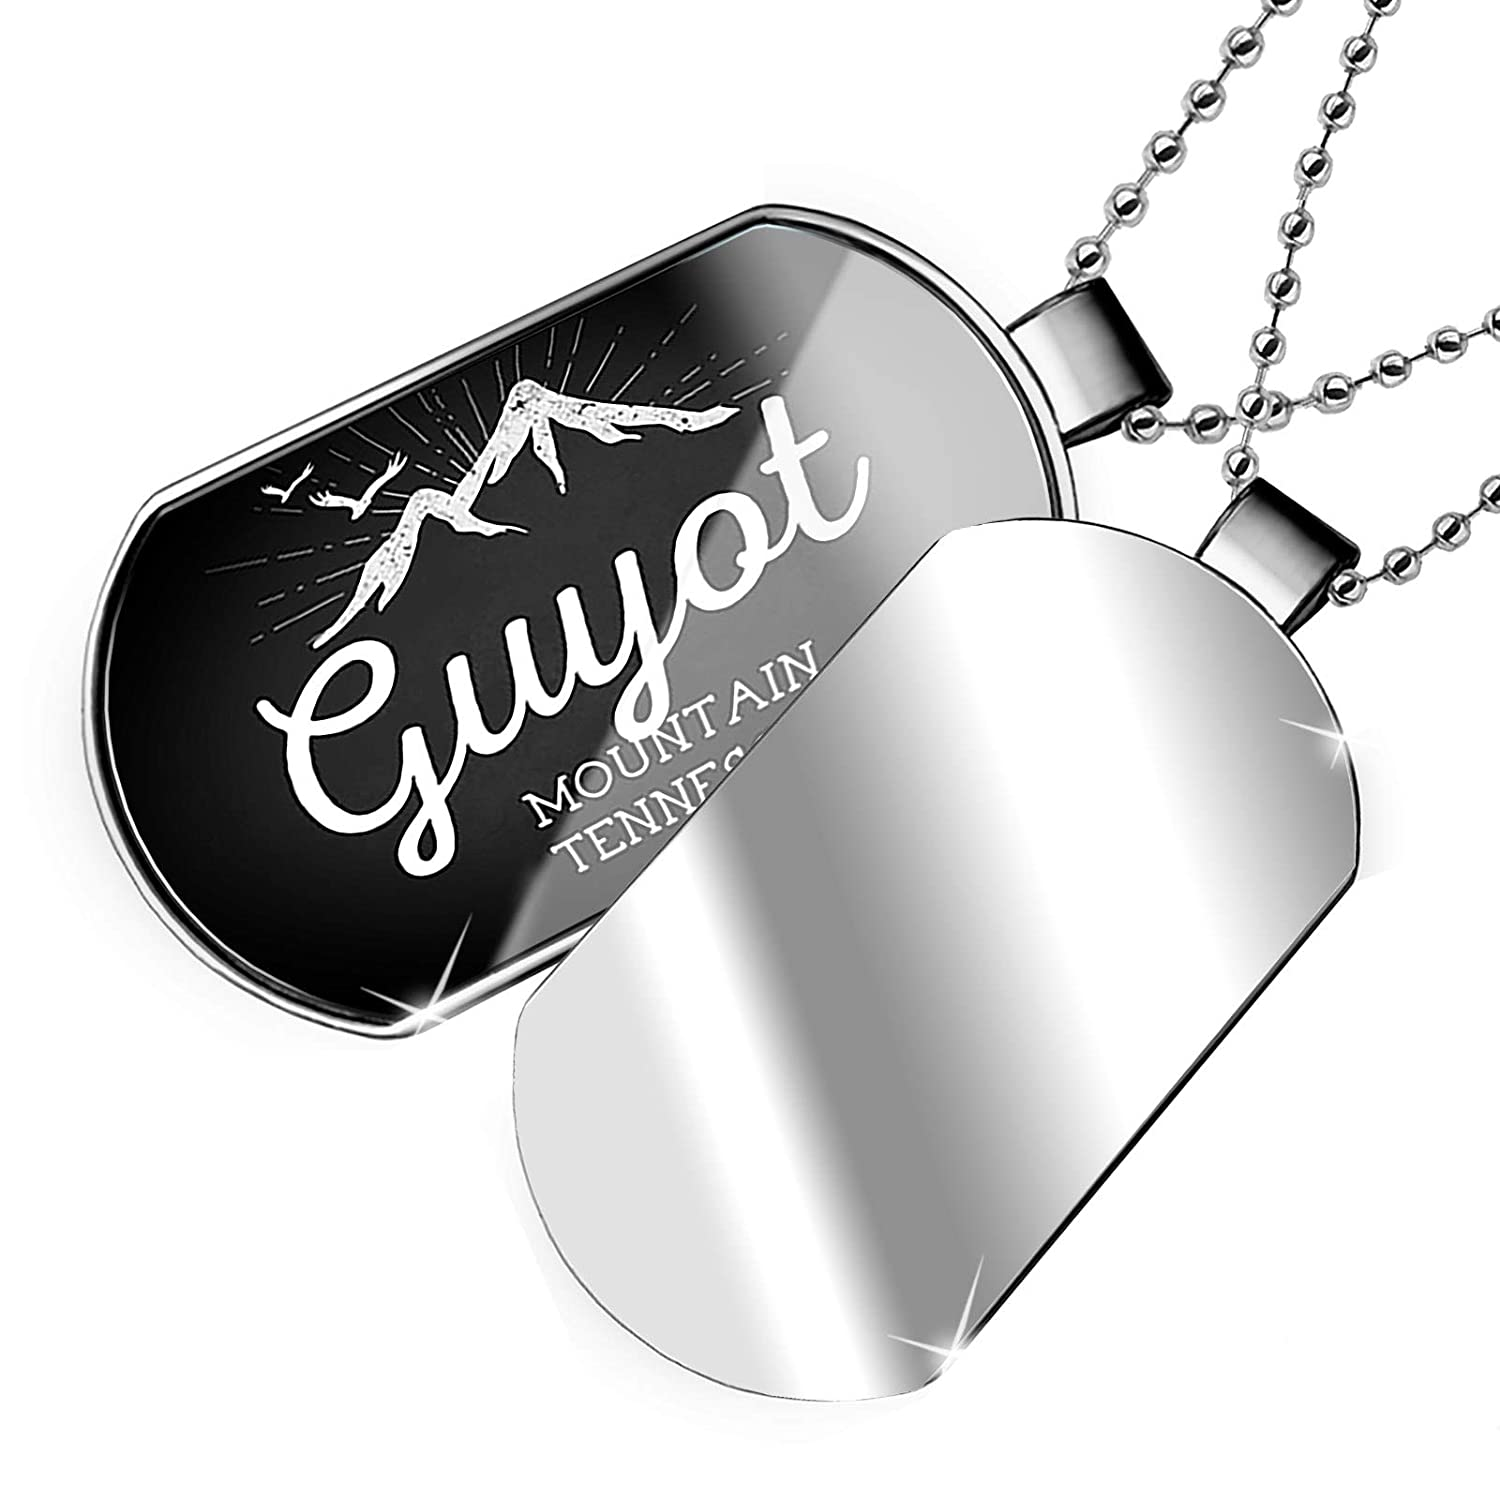 NEONBLOND Personalized Name Engraved Mountains Chalkboard Guyot Mountain Tennessee Dogtag Necklace